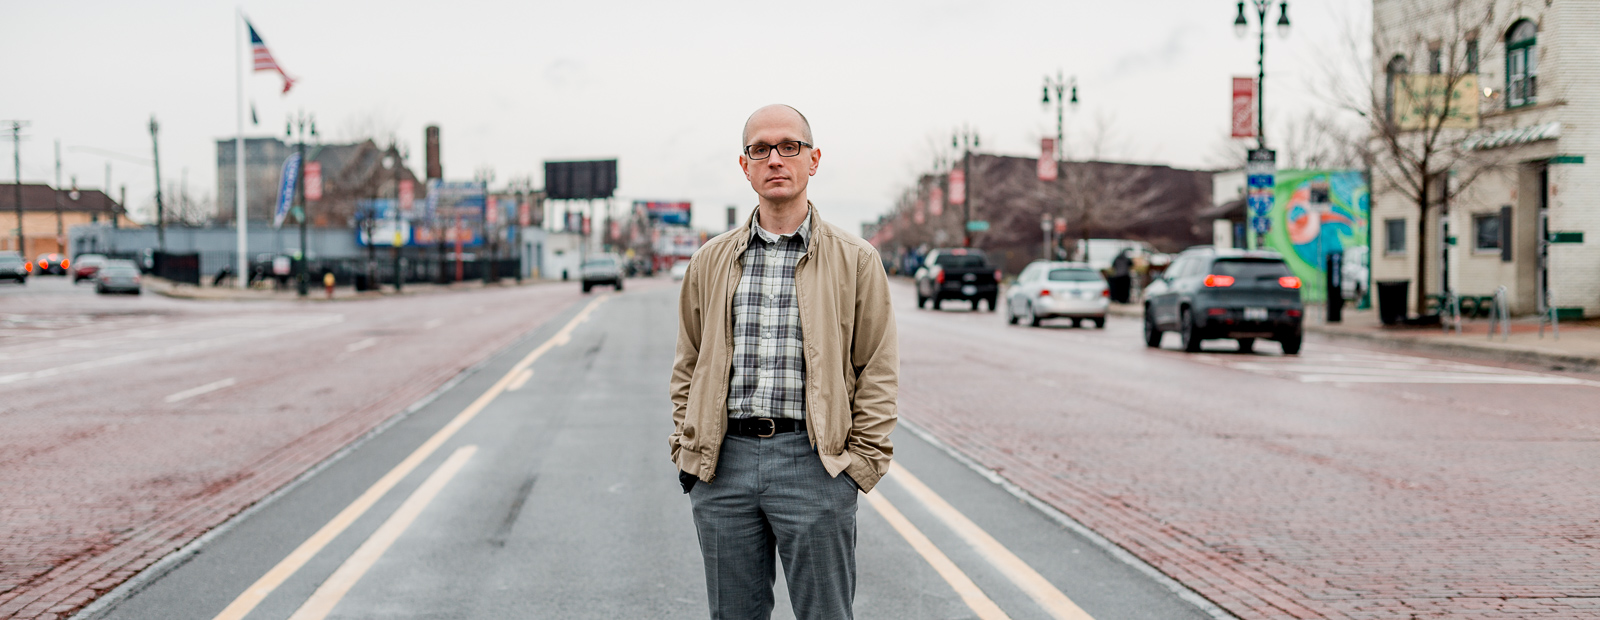 Historian Paul Szewczyk, who runs the blog Detroit Urbanism, in the middle of Michigan Avenue.